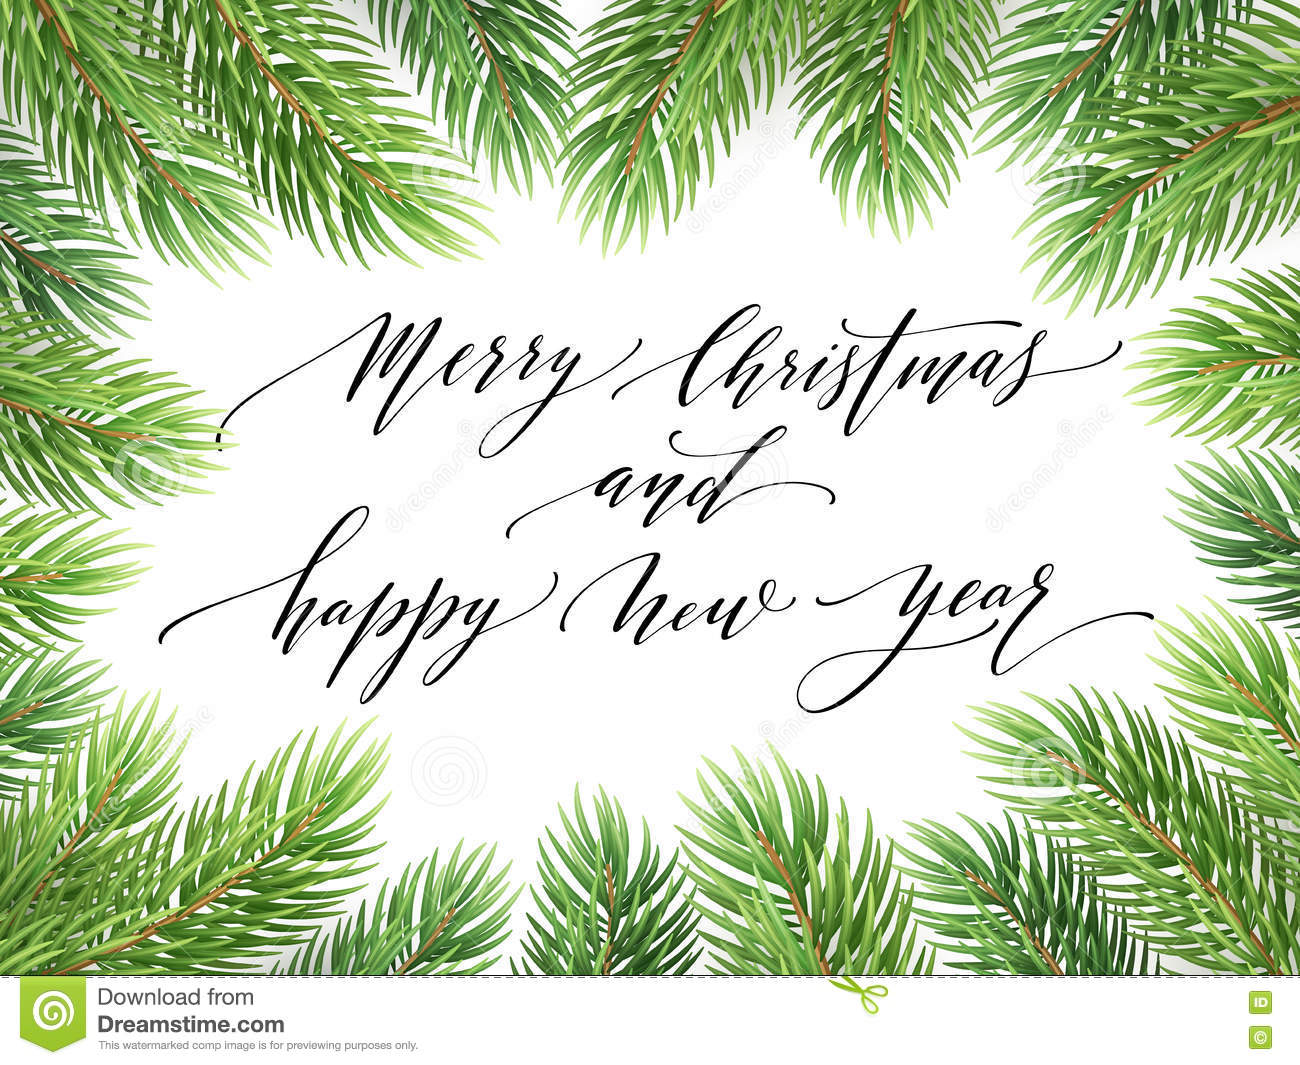 Merry Christmas And Happy New Year 2017 Greeting Card, Vector ...